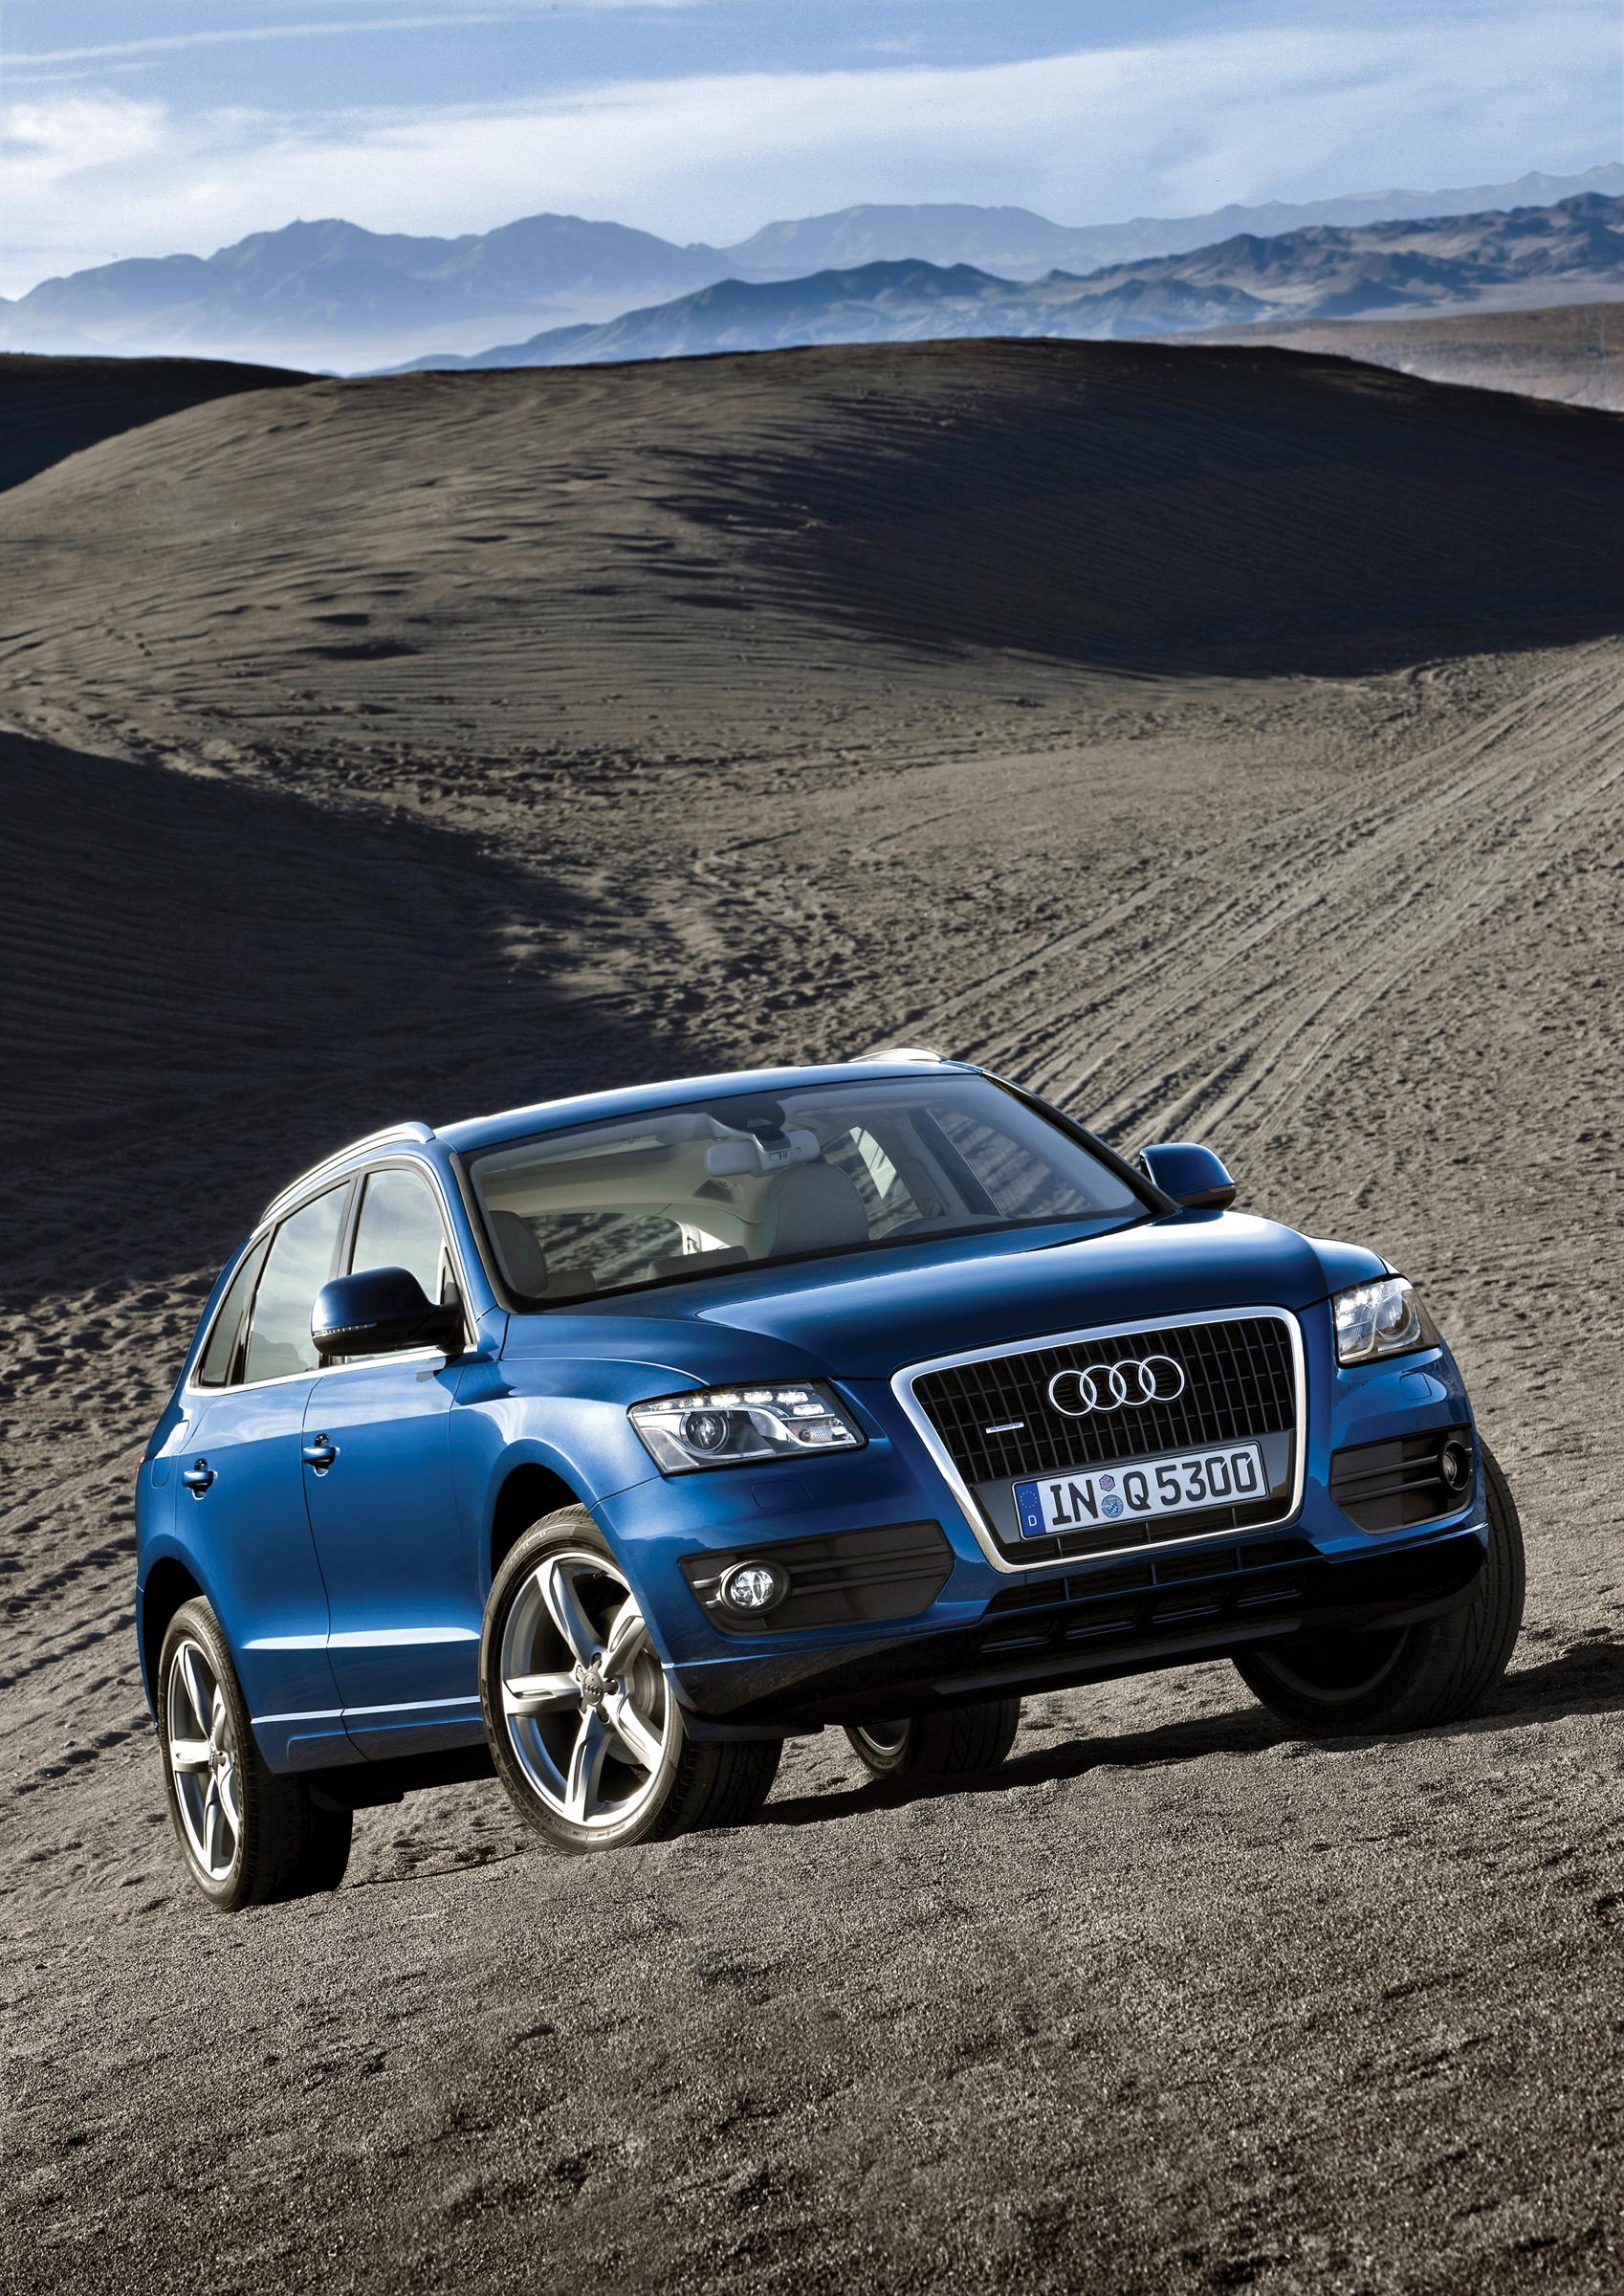 Audi Q5 The Performance Suv For Active Lifestyle 2009 Wiring Diagram